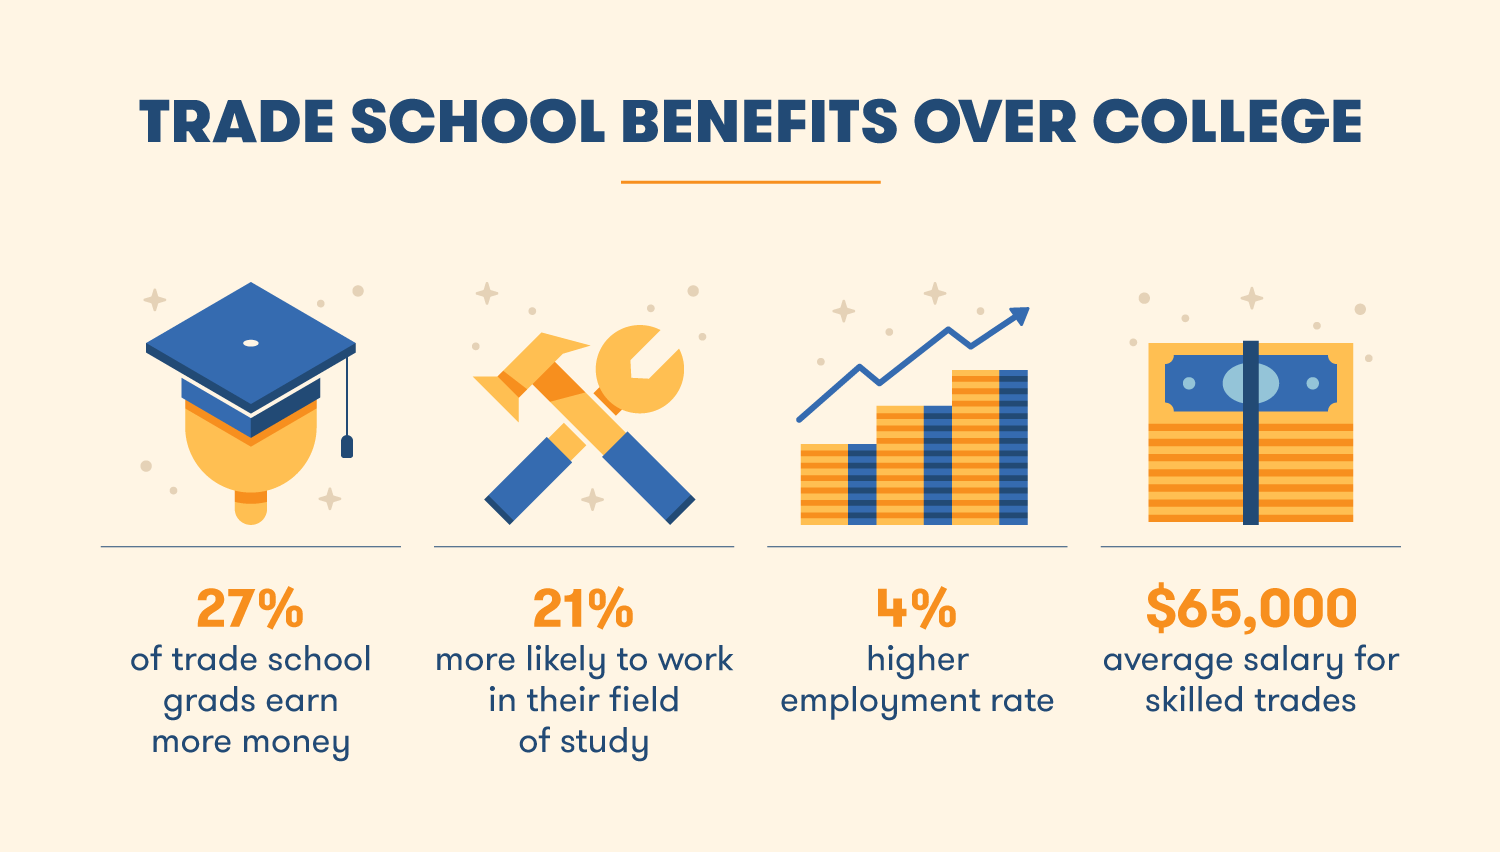 The benefits of trade school over college include better pay and a higher employment rate.